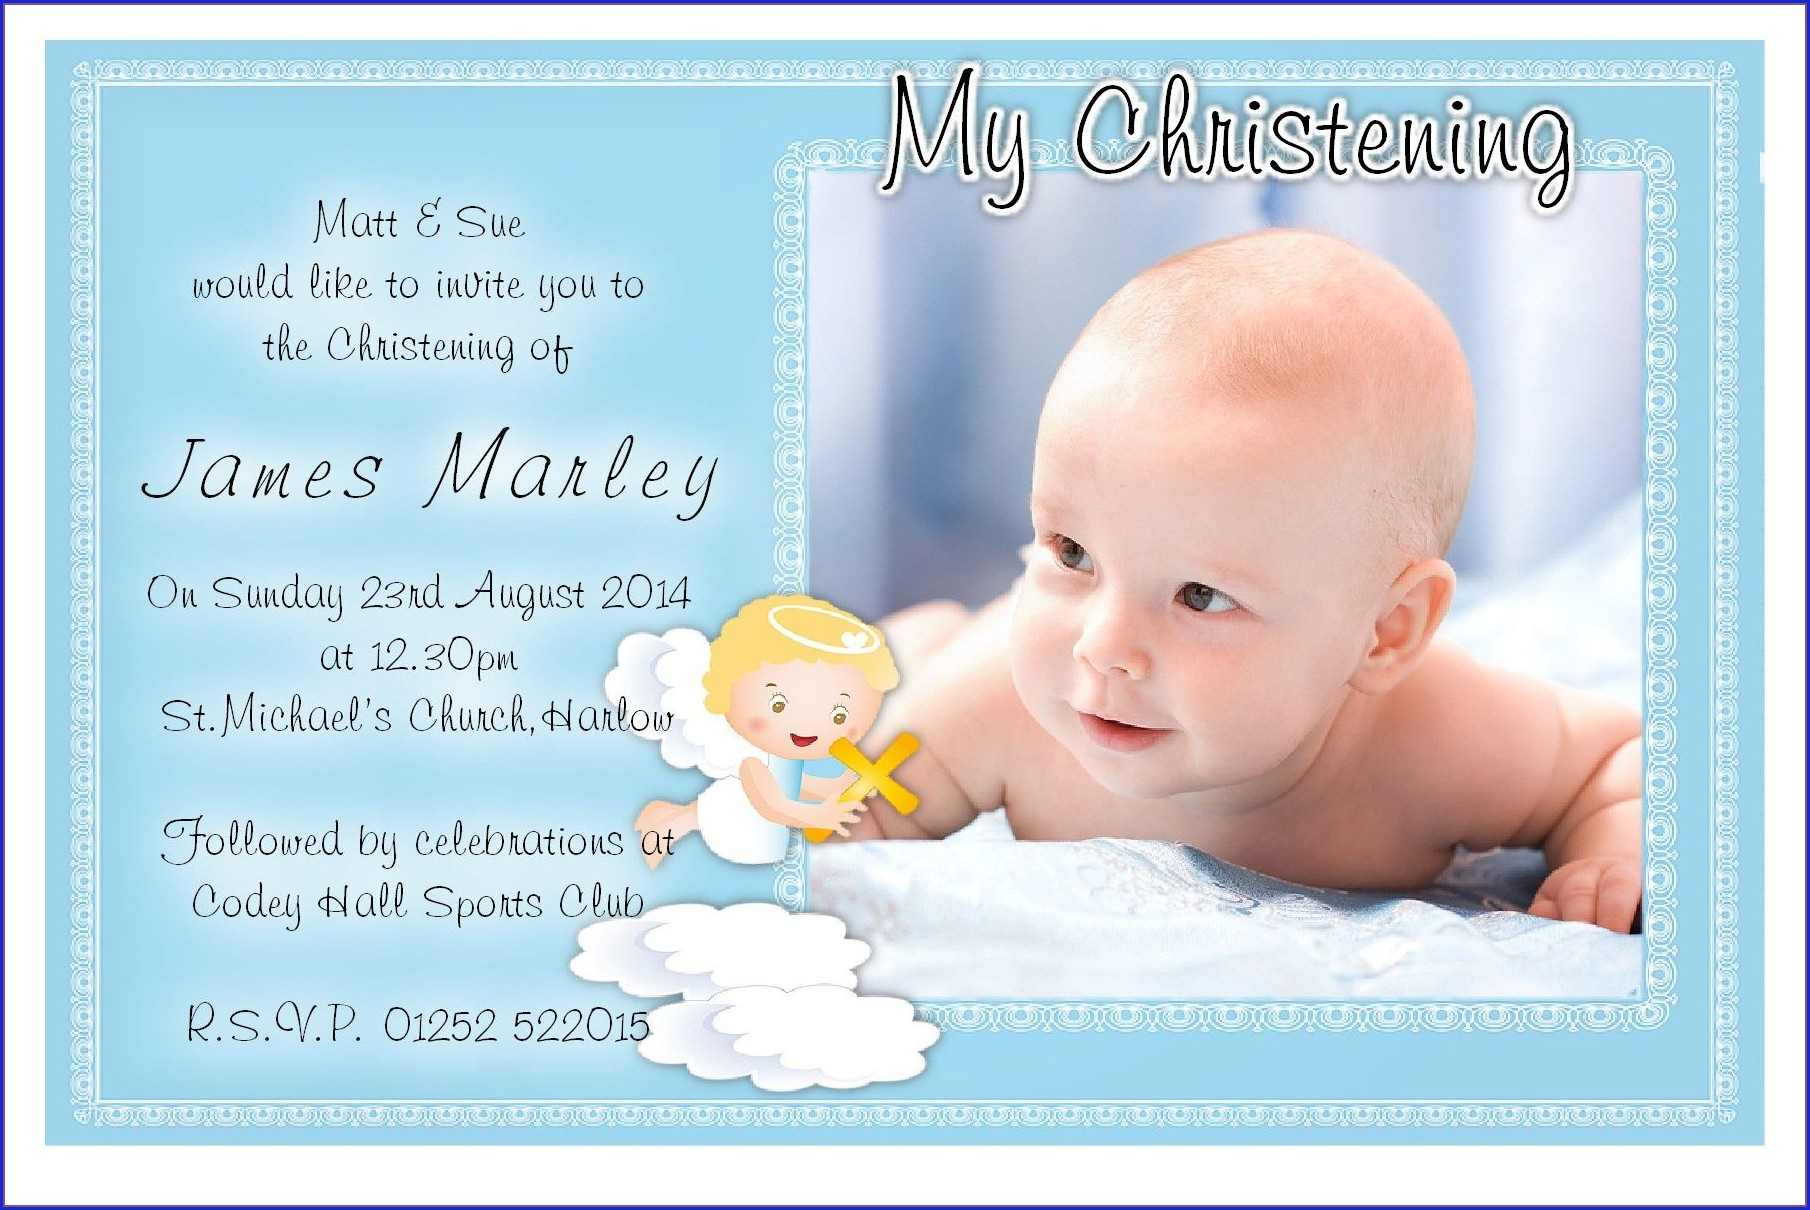 Invitation Card For Christening Baby Boy Layout